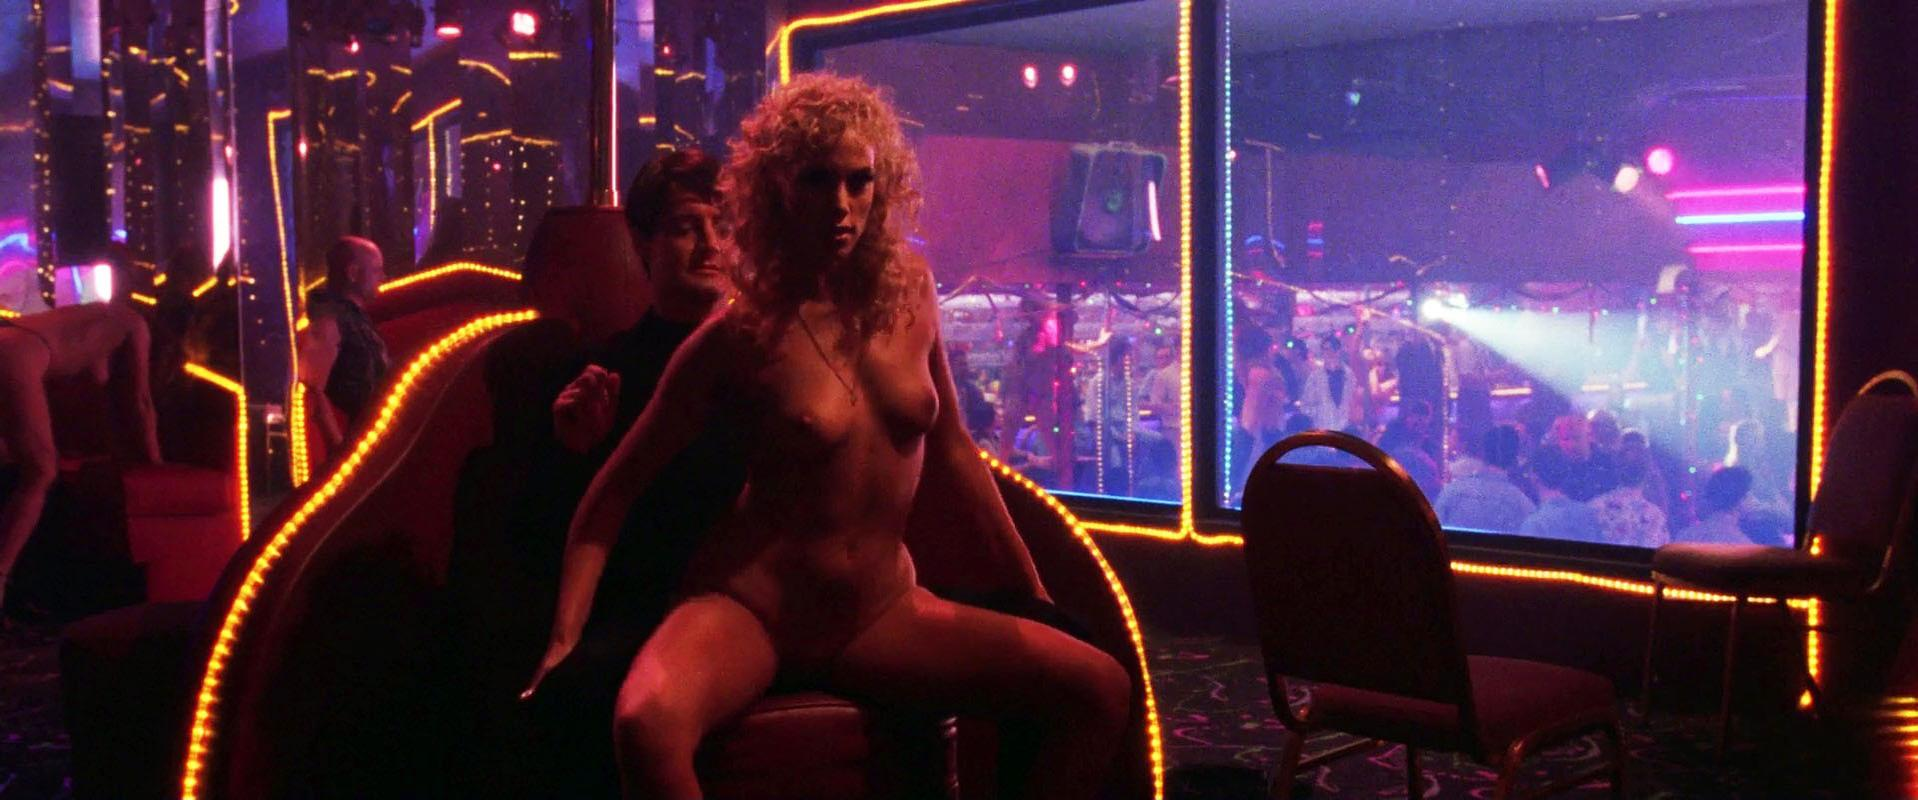 Elizabeth Berkley nude - Showgirls (1995)